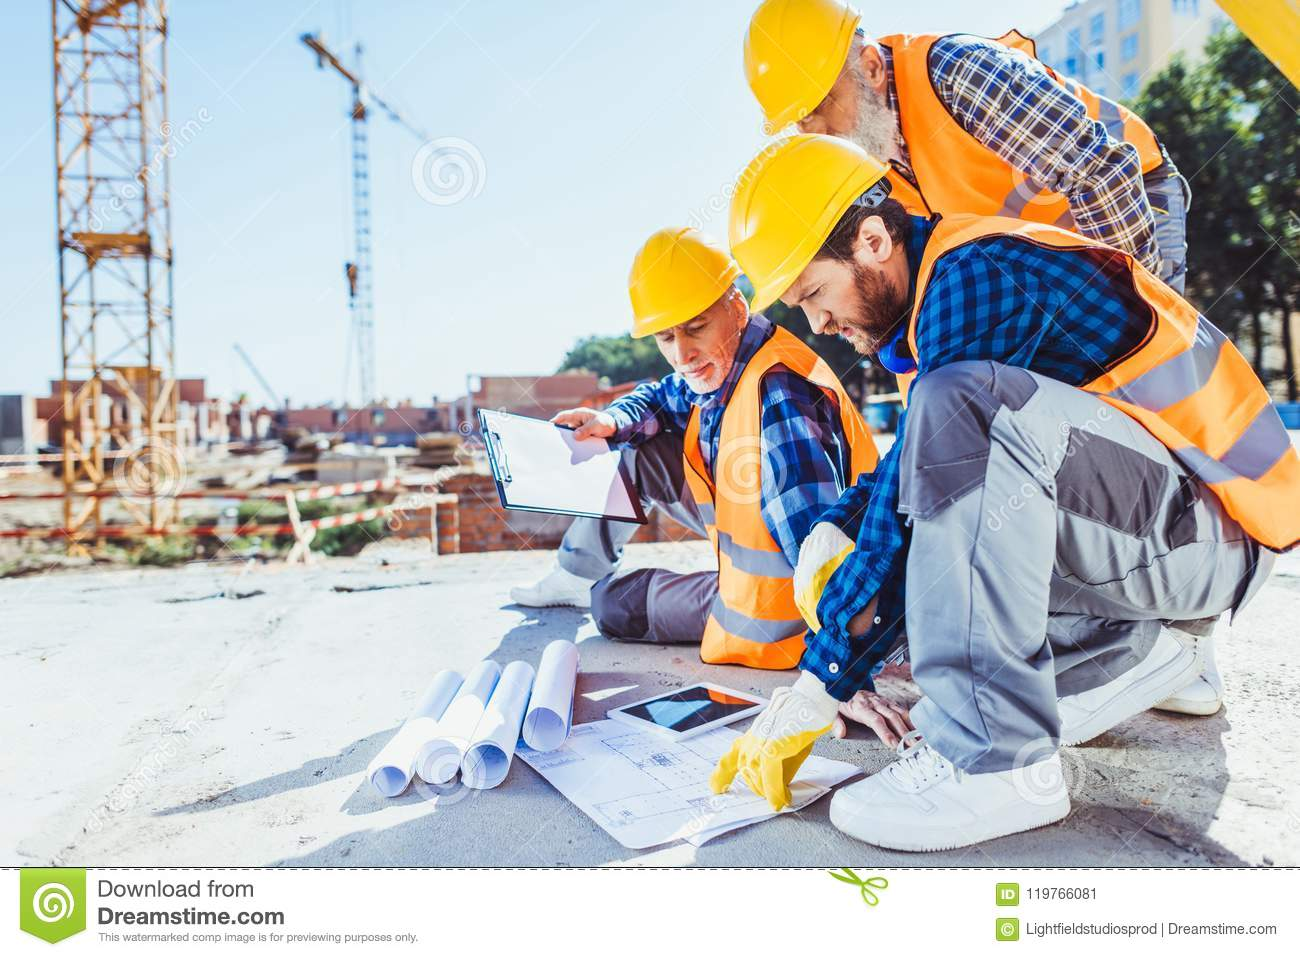 baf85b6c1ecce construction workers in uniform sitting on concrete at construction site